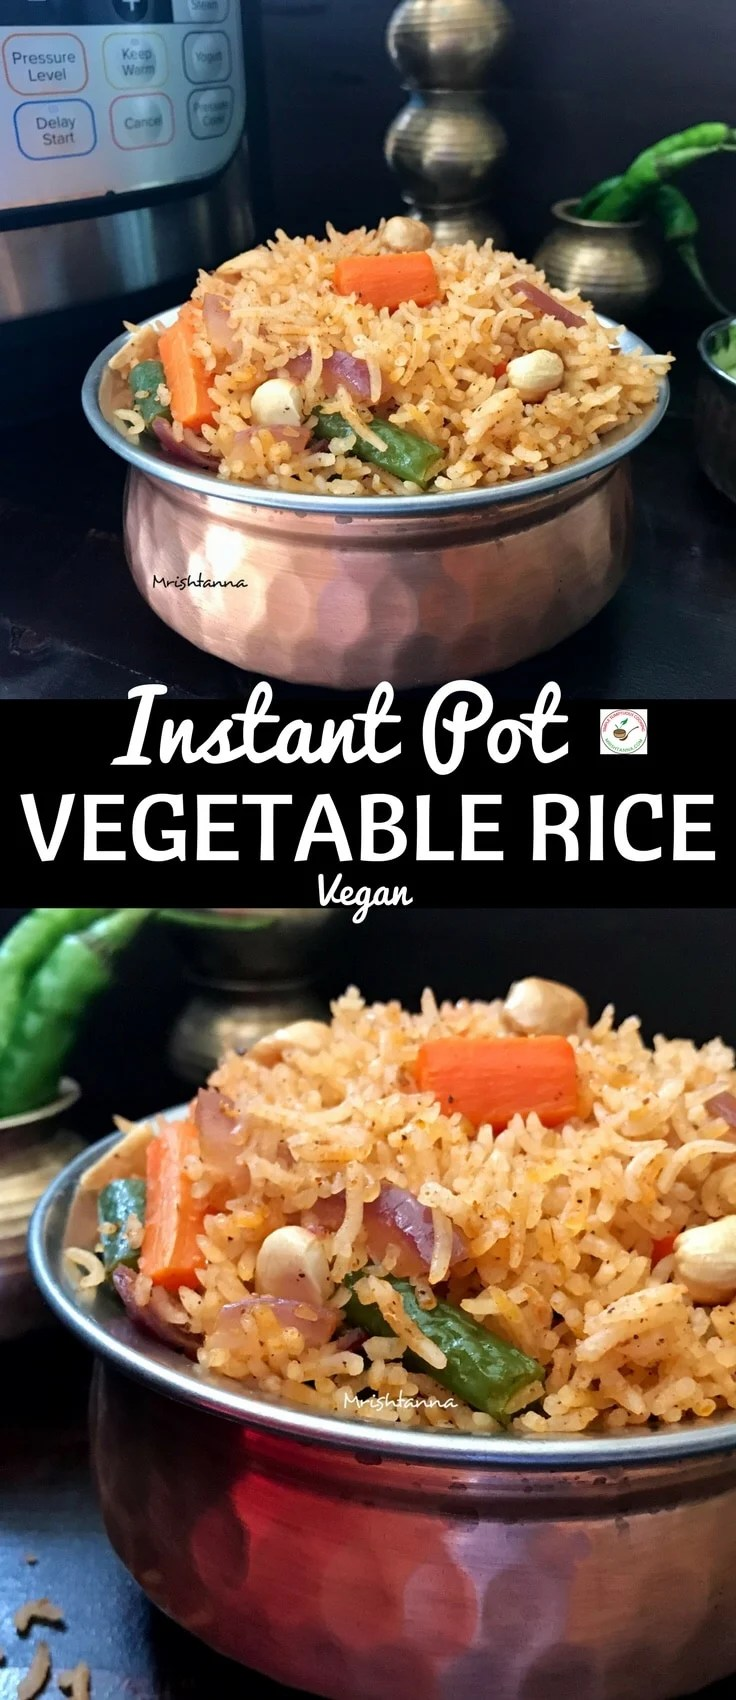 Instant Pot Vegetable Rice